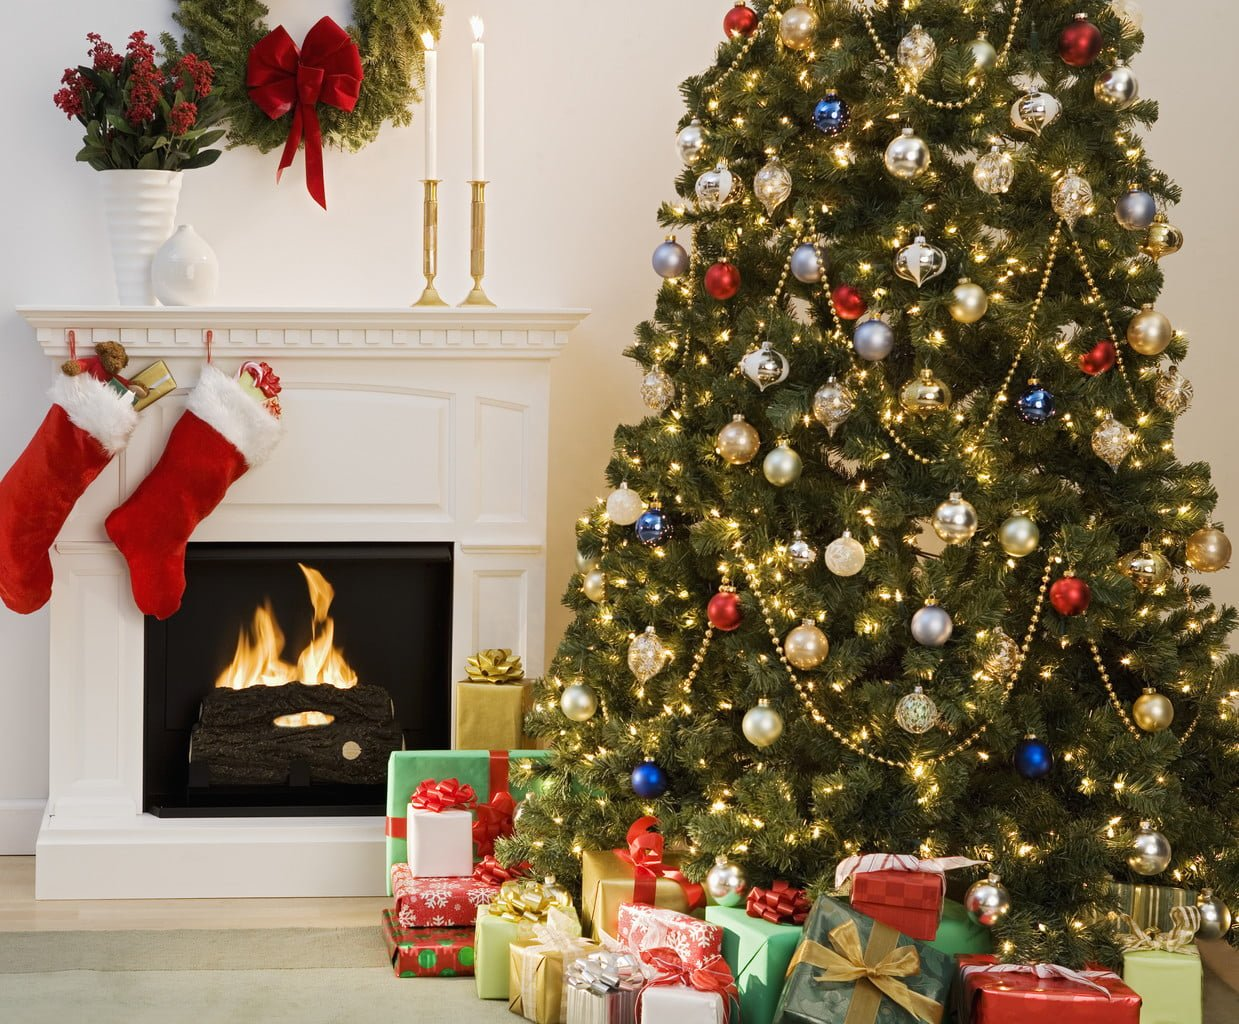 Where to place your Christmas tree in December 2015